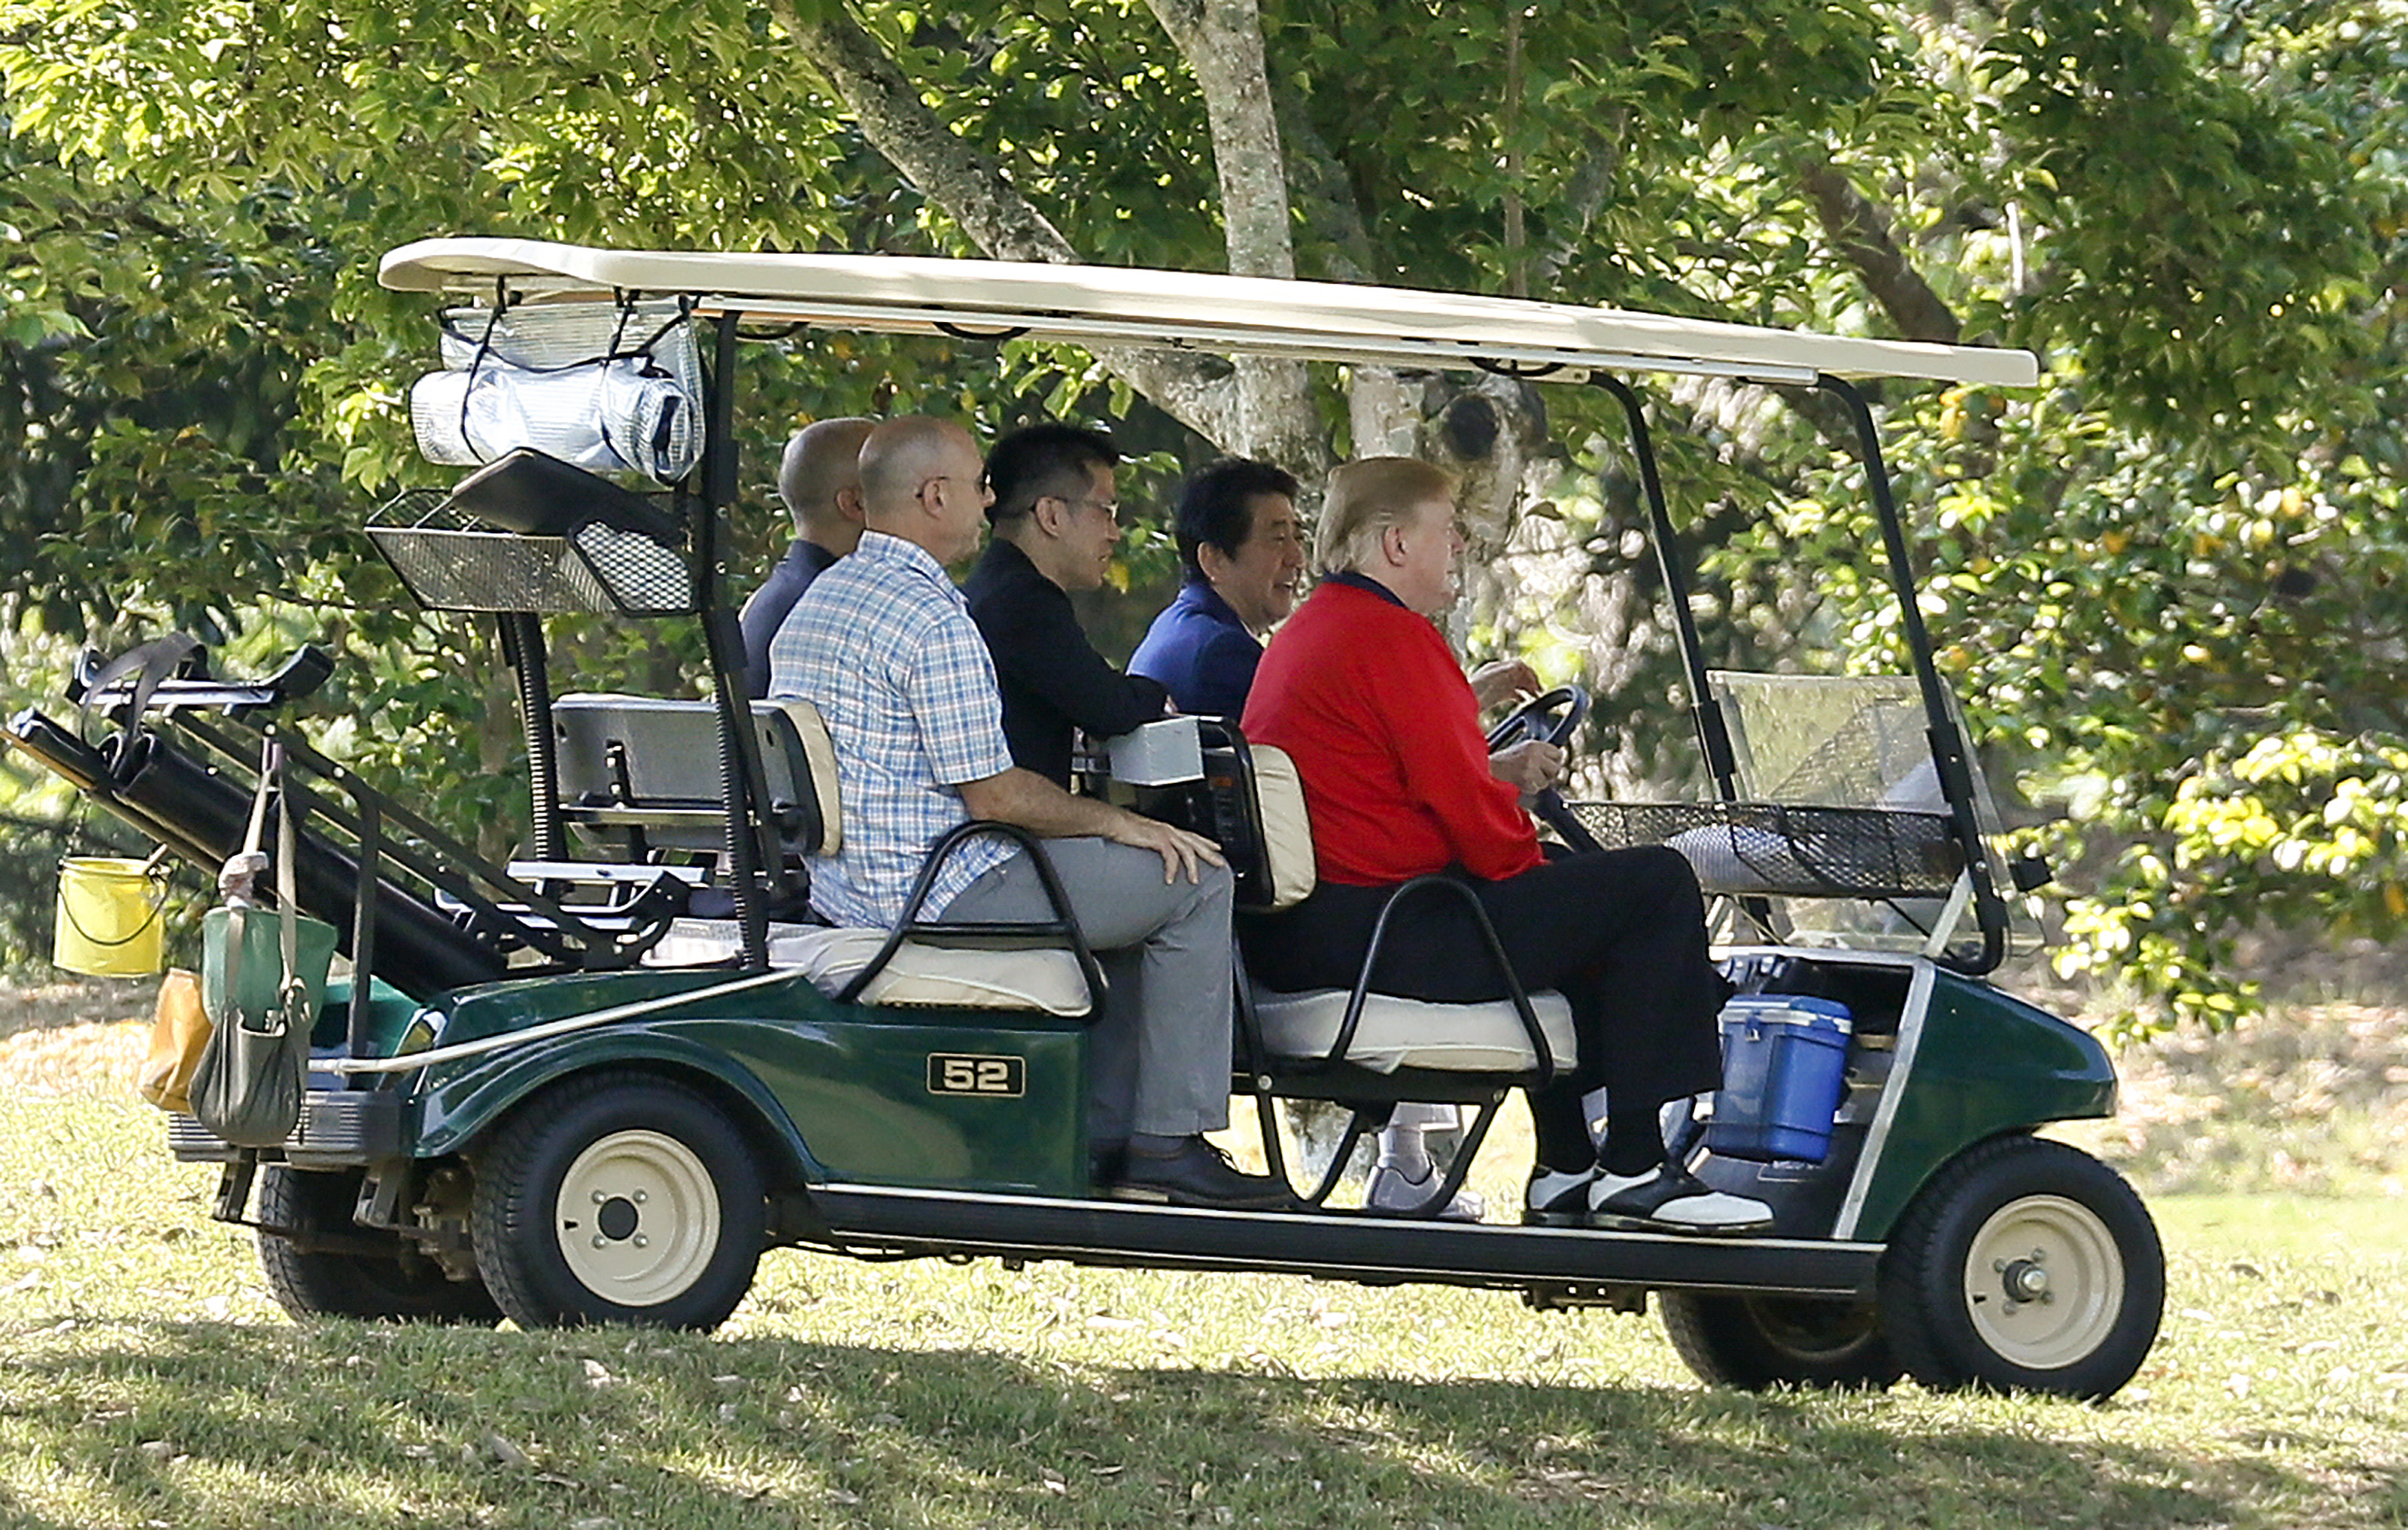 CHIBA, JAPAN - MAY 26: U.S. President Donald Trump (R) sits in the golf cart as Japanese Prime Minister Shinzo Abe (2-R) drives while playing golf at Mobara Country Club on May 26, 2019 in Chiba, Japan. U.S. President Donald Trump is on a four-day state visit to Japan, the first official visit of the Reiwa era. Alongside a number of engagements, Trump is expected to watch a sumo match, attend an imperial banquet with newly-enthroned Emperor Naruhito and meet with families of North Korean abductees. (Photo by Kimimasa Mayama - Pool/Getty Images)